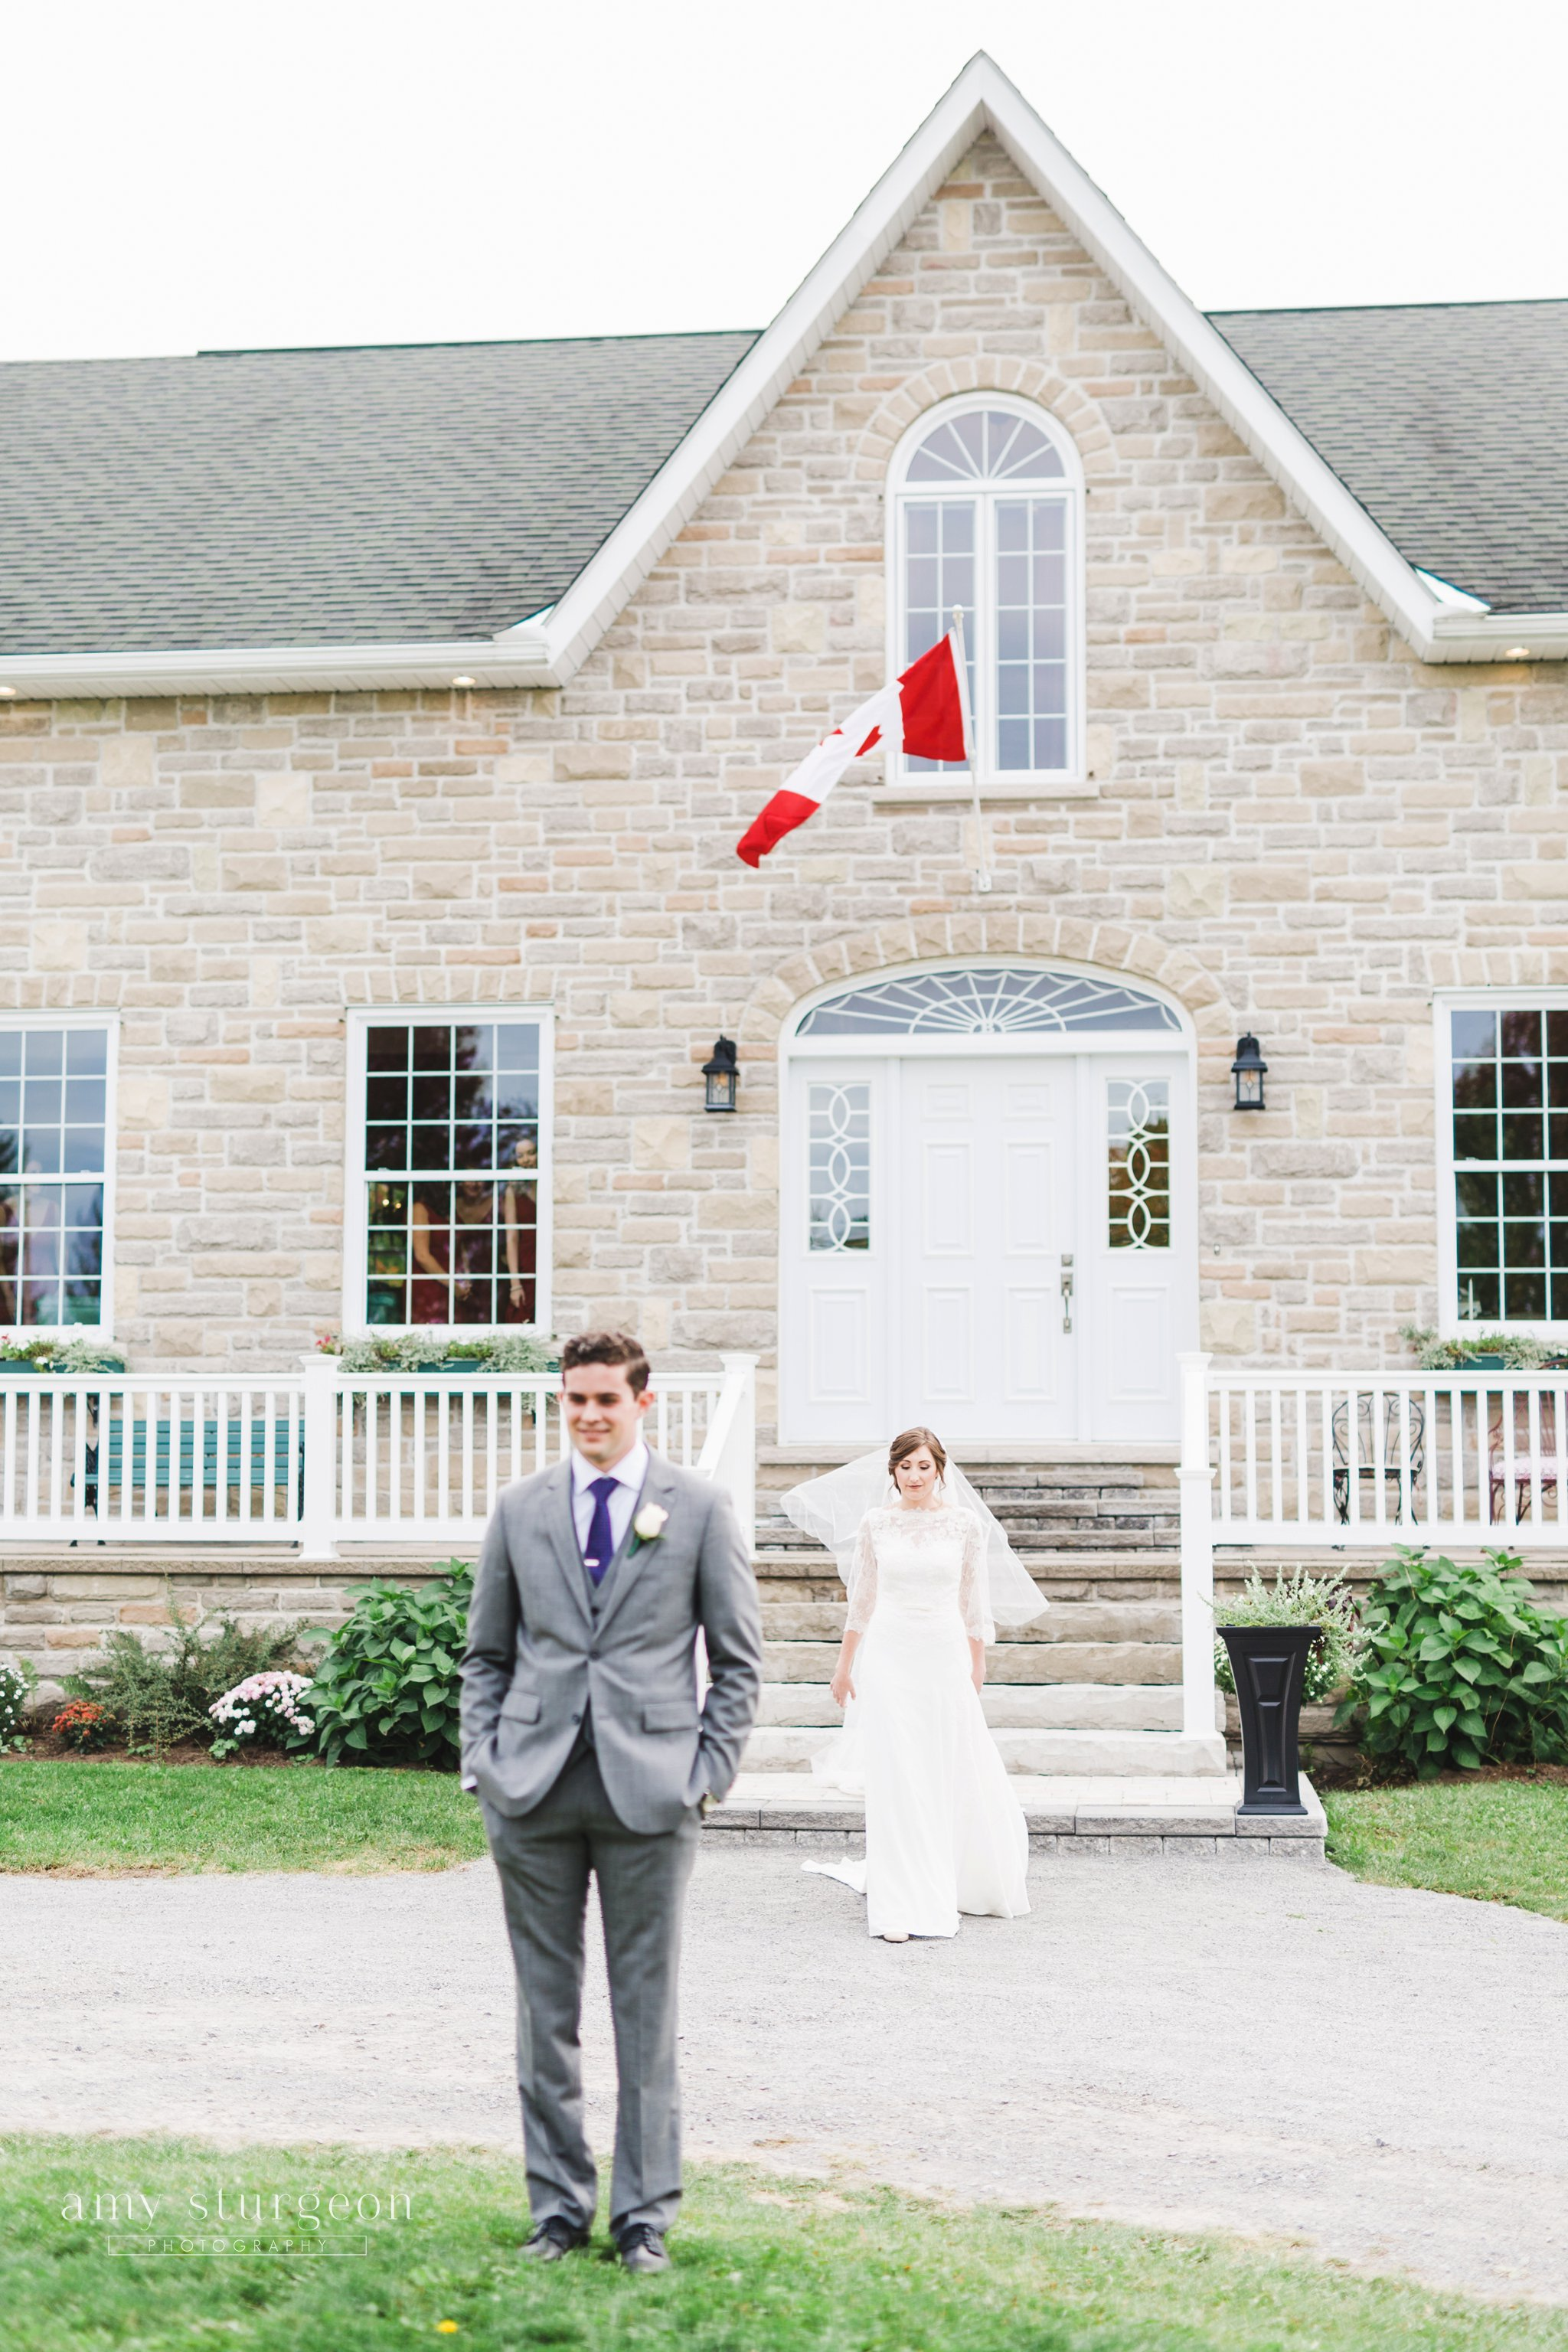 The bride walked from the house towards her future husband for their first look at the alpaca farm wedding in ottawa